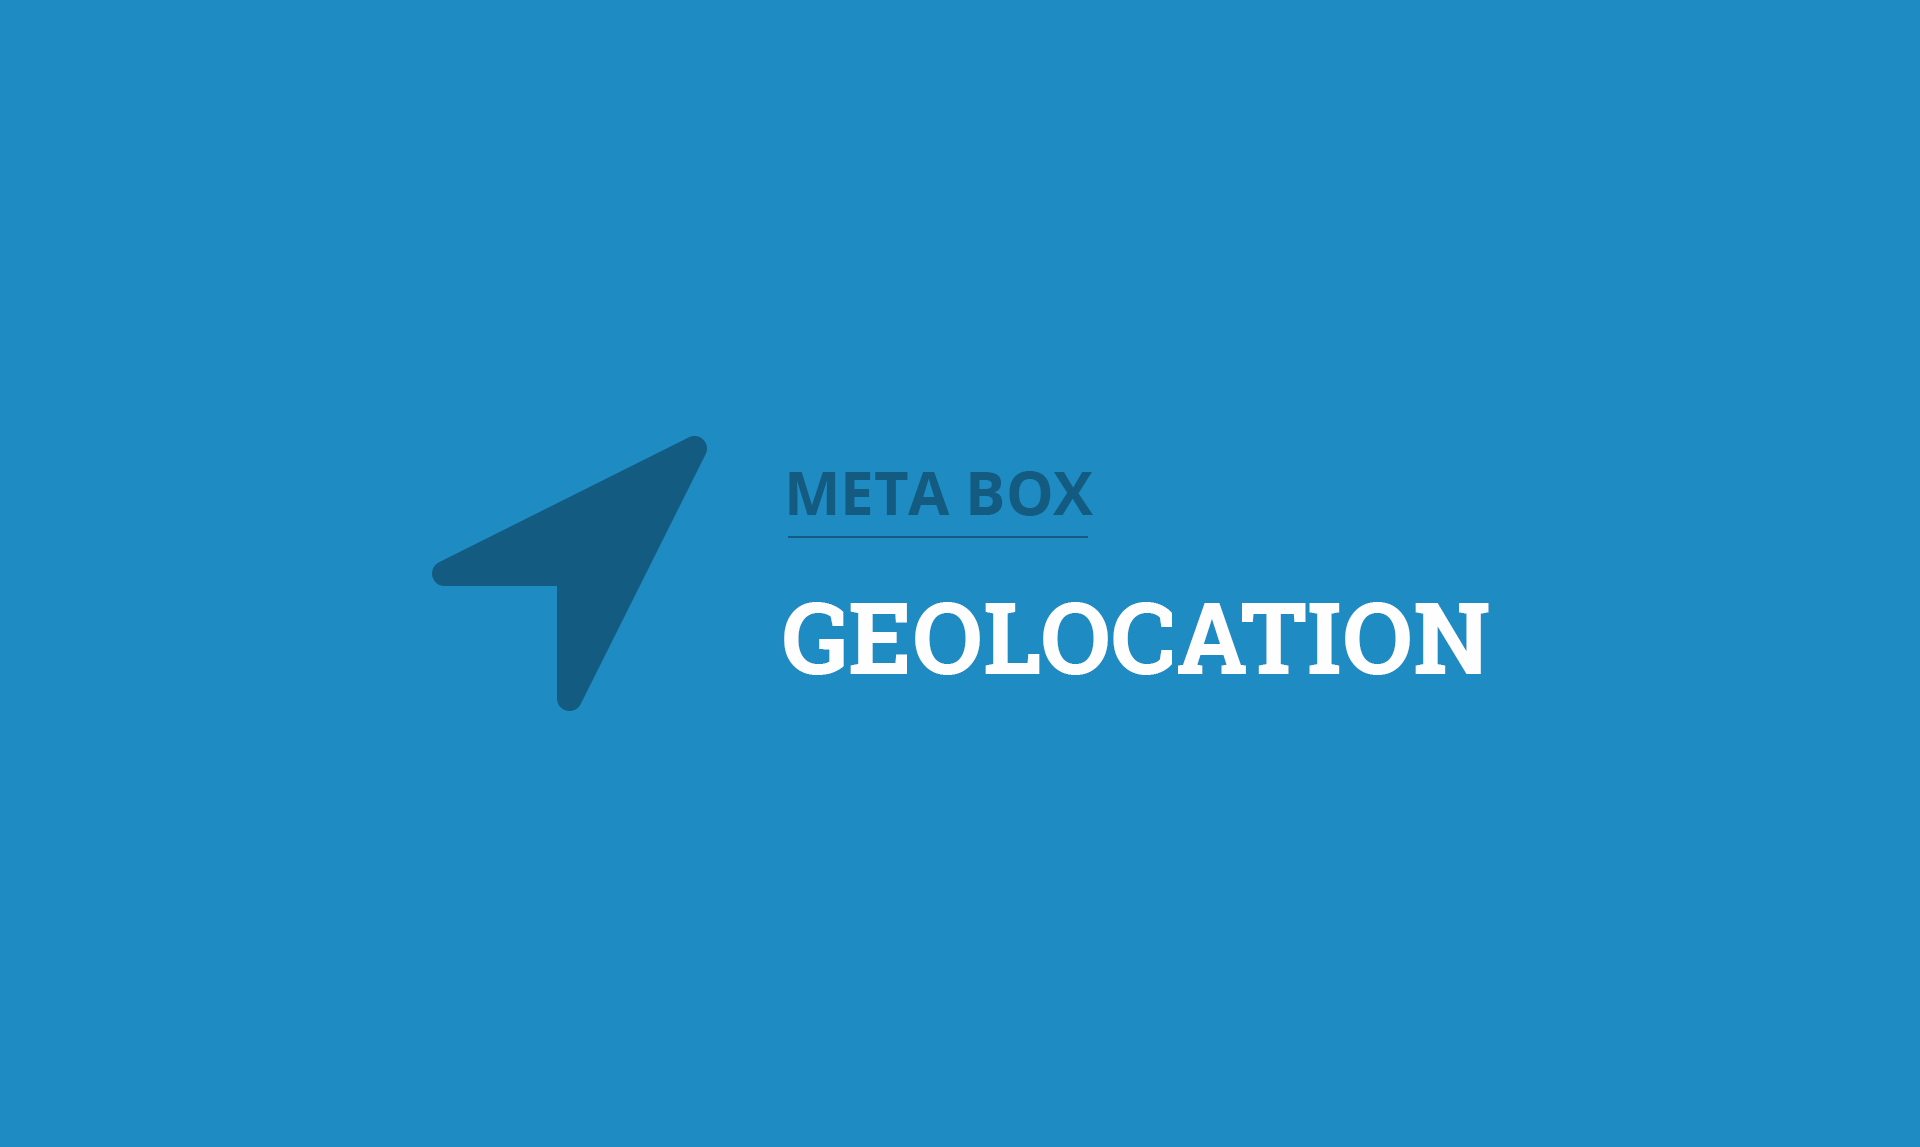 Meta Box Geolocation